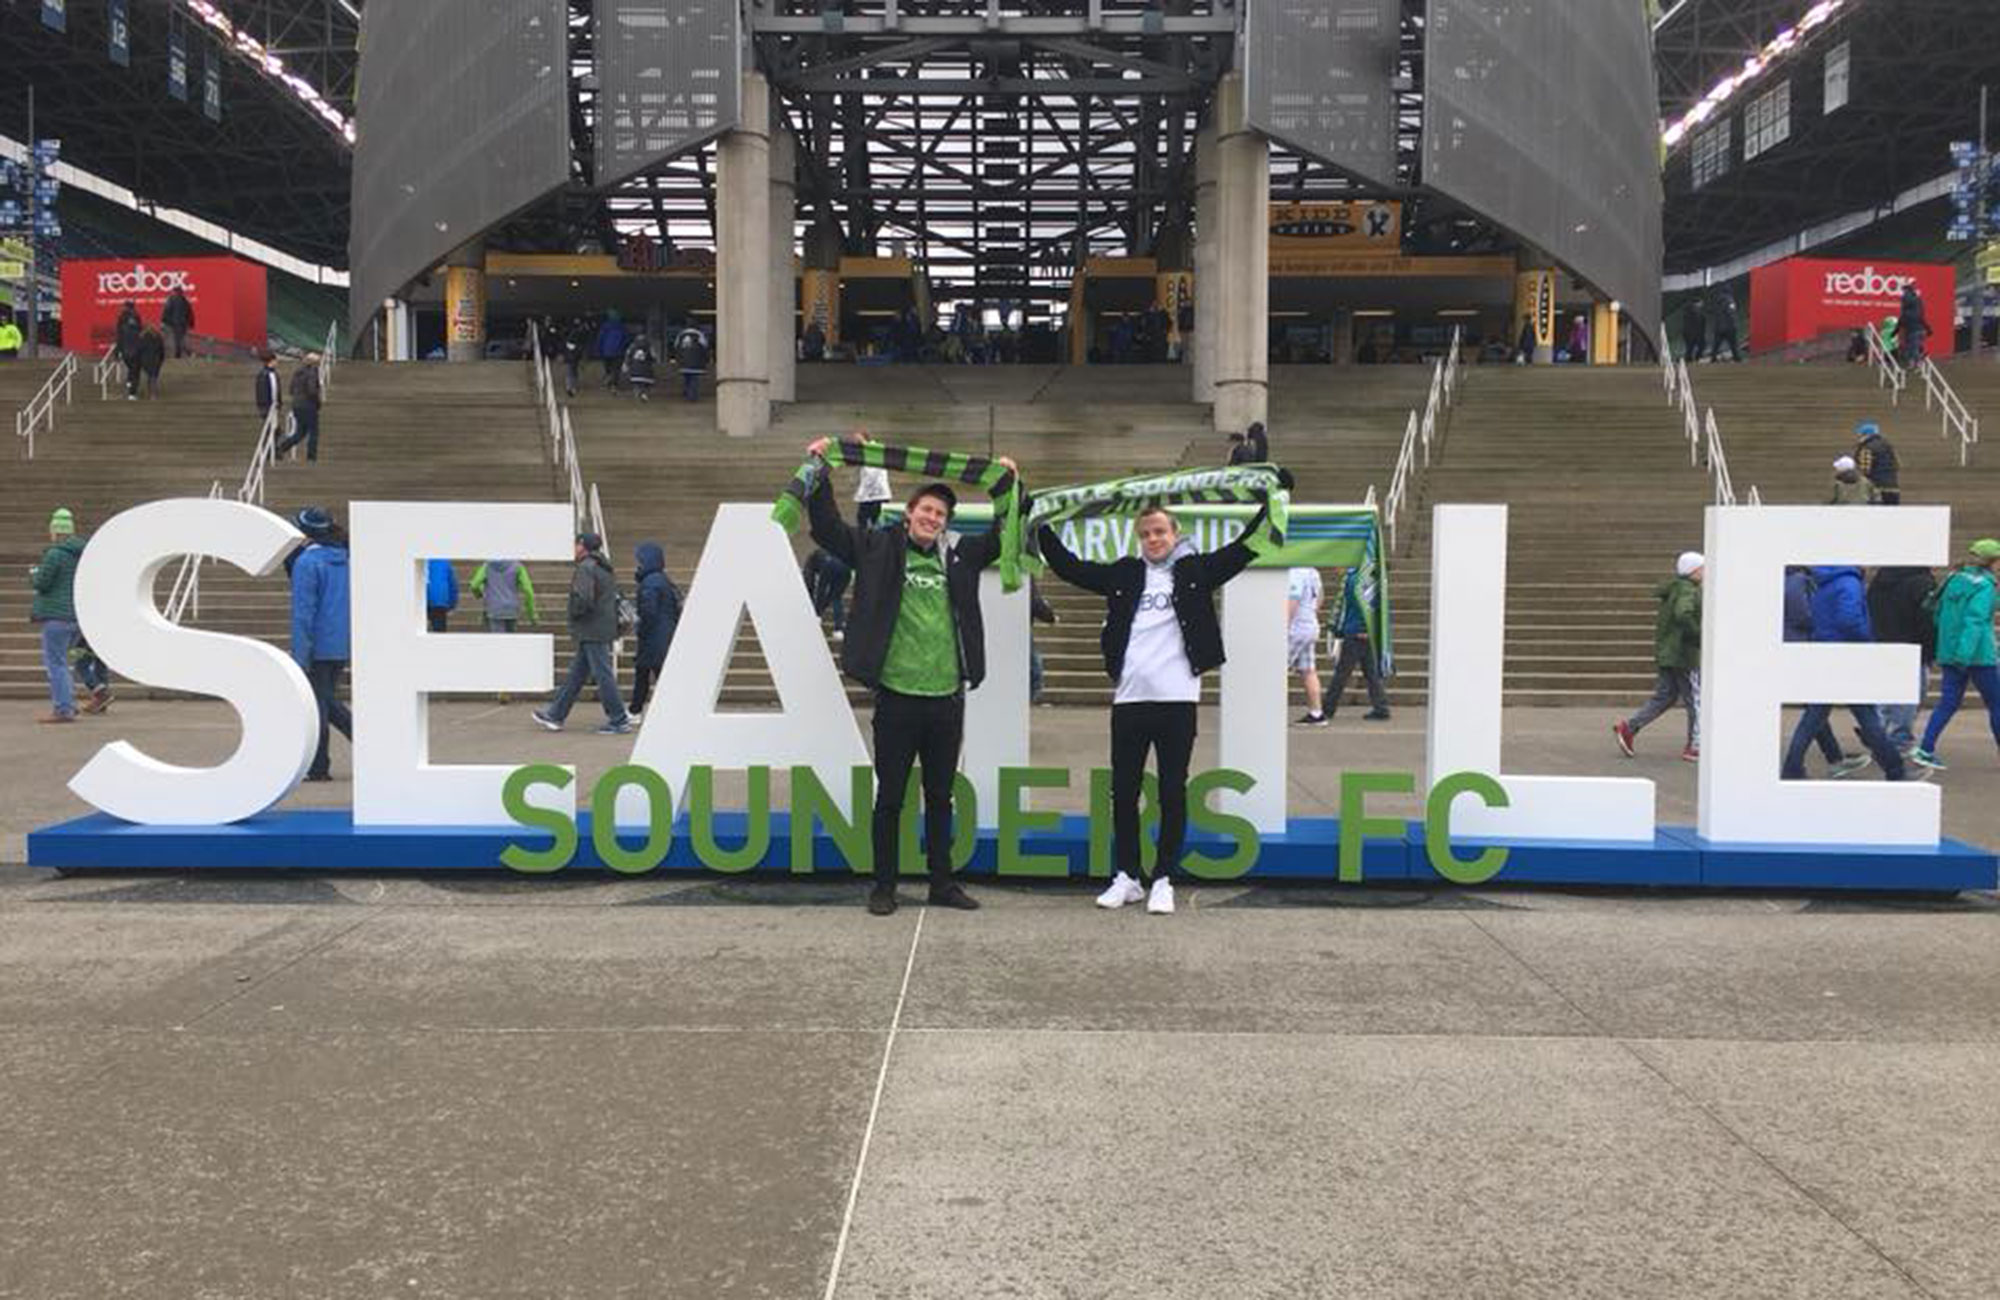 Stadium in Seattle attended by two college students from Green River College